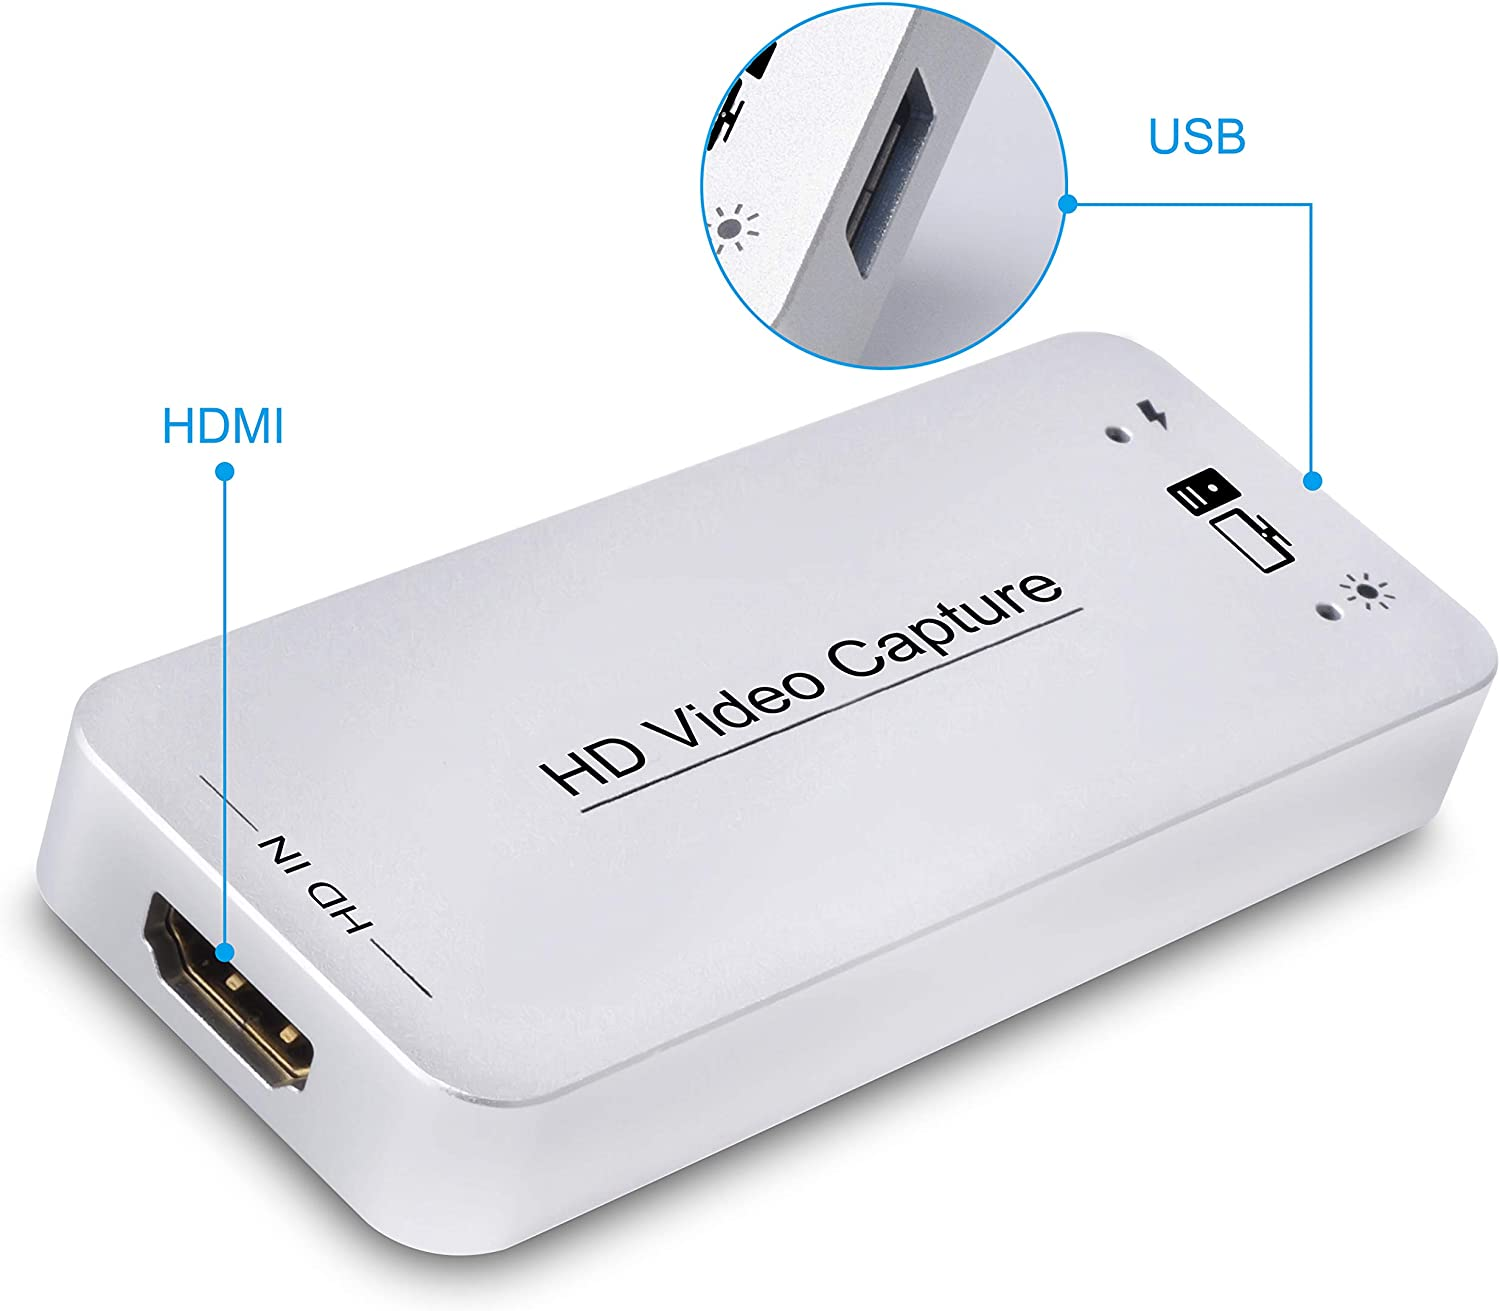 Type-C USB3.0 Video Capture Dongle 4K//60Hz HDMI Output/&Input Support UAC/&UVC